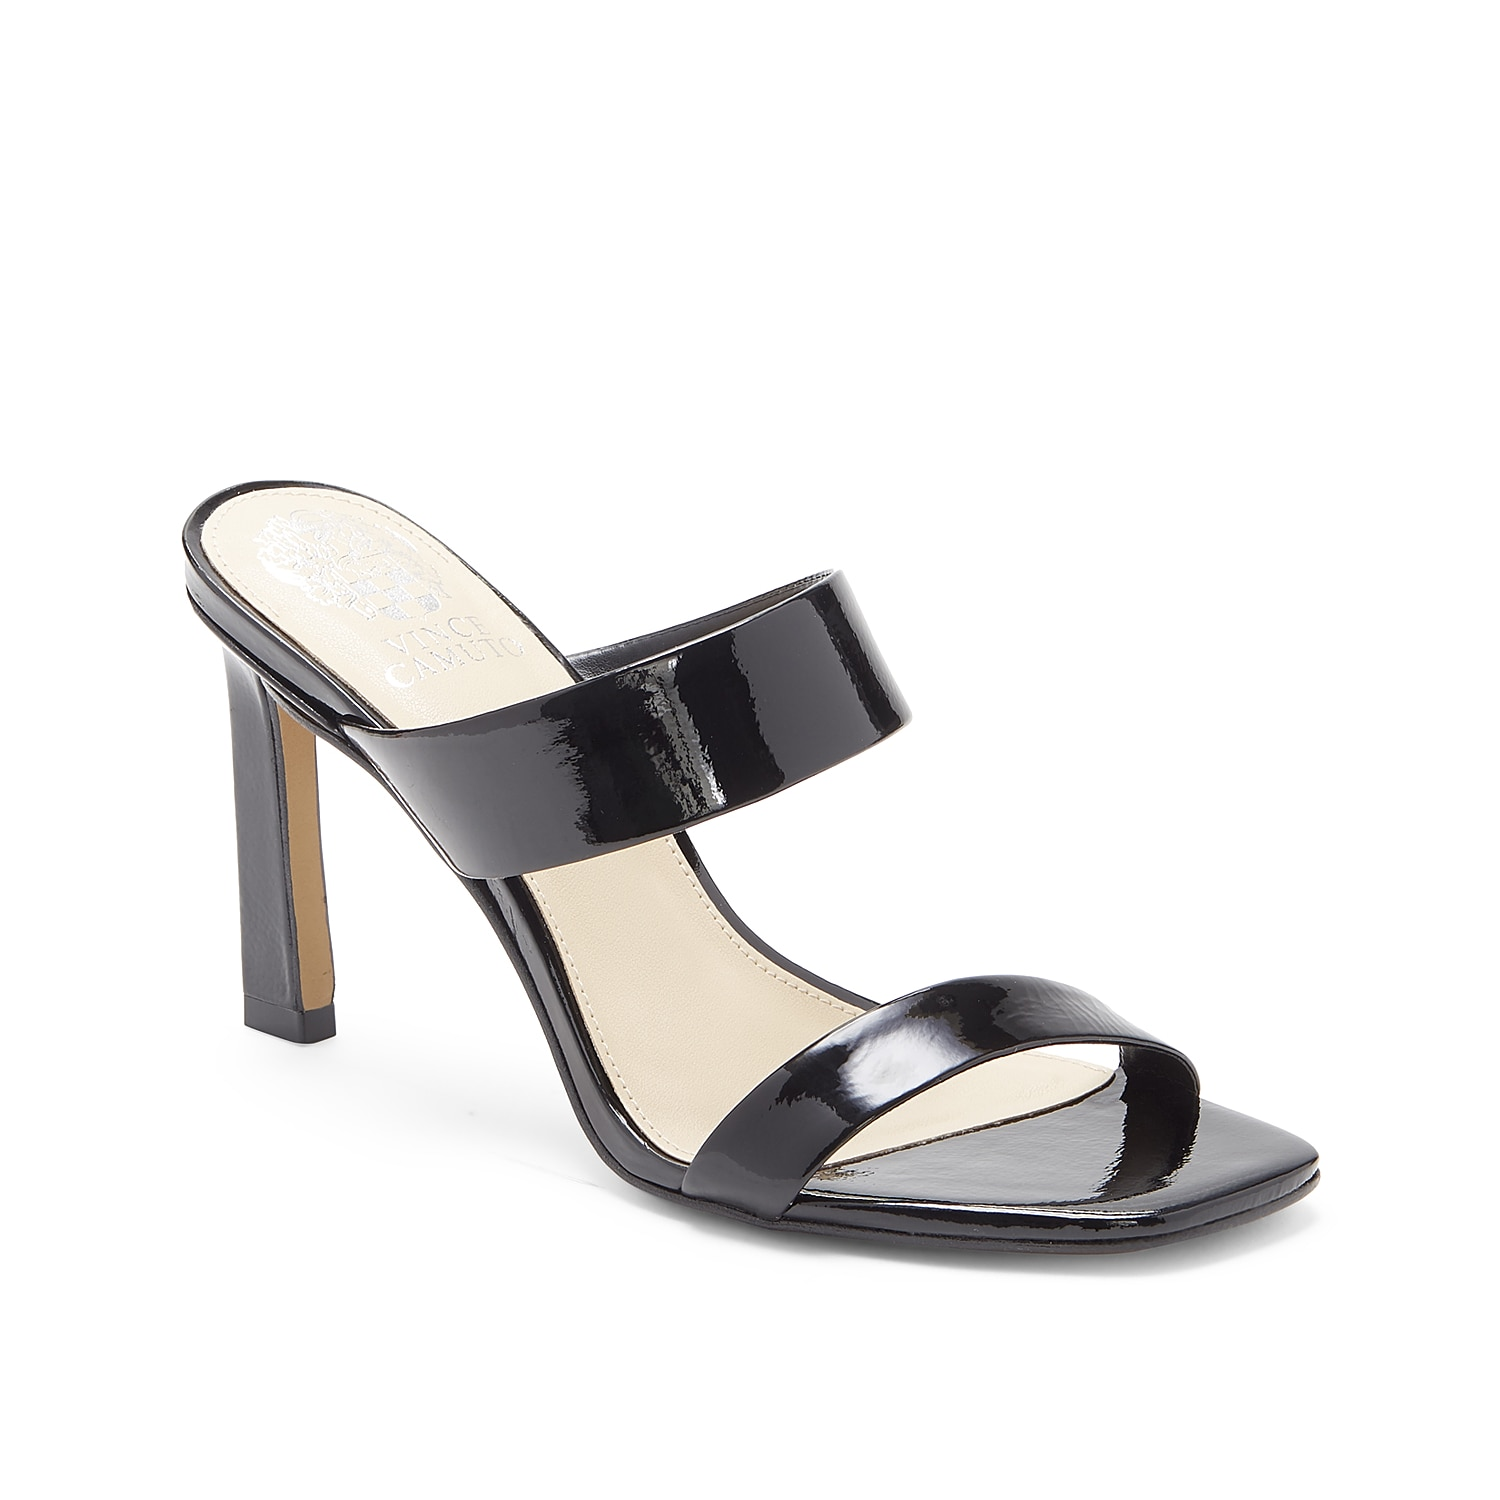 Slide into trendy appeal with the Brisstol sandal from Vince Camuto. With double straps and a squared off toe, this leather pair takes any outfit to the next level.